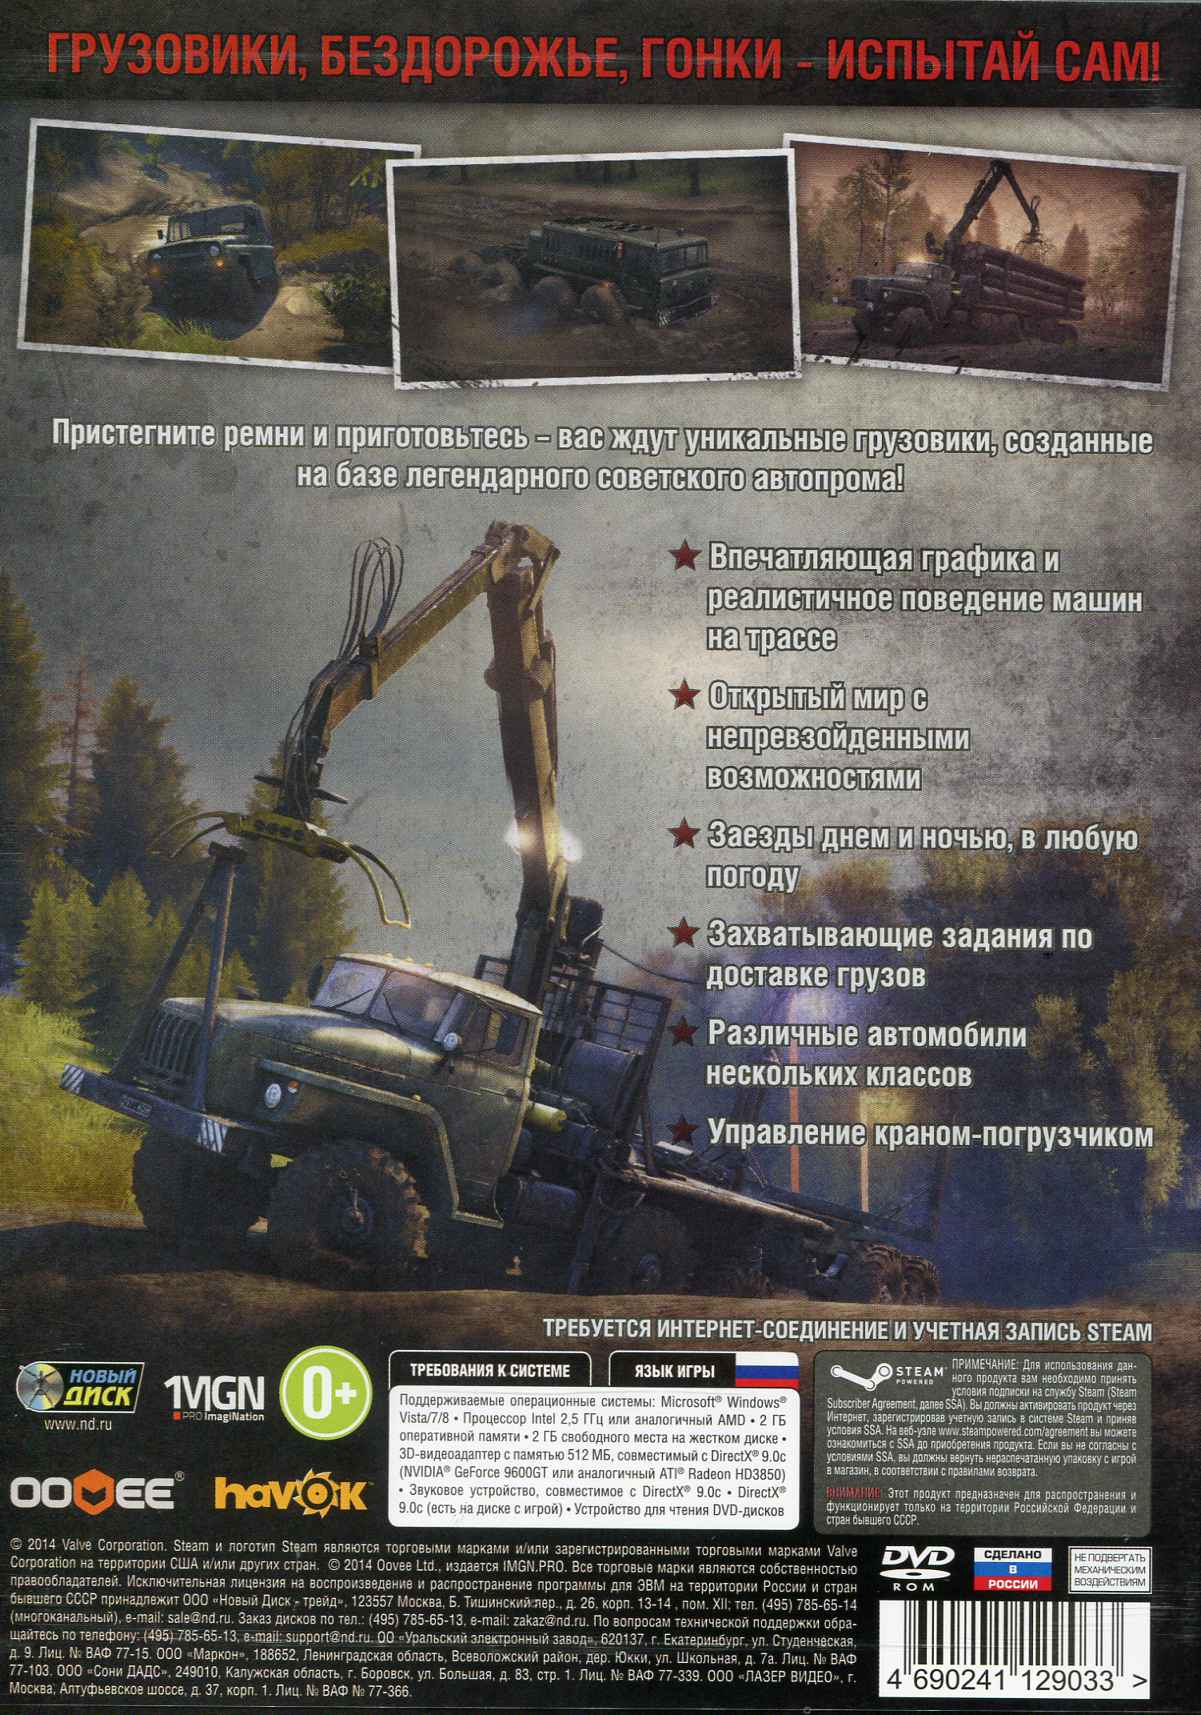 Spintires Activation Key In Steam